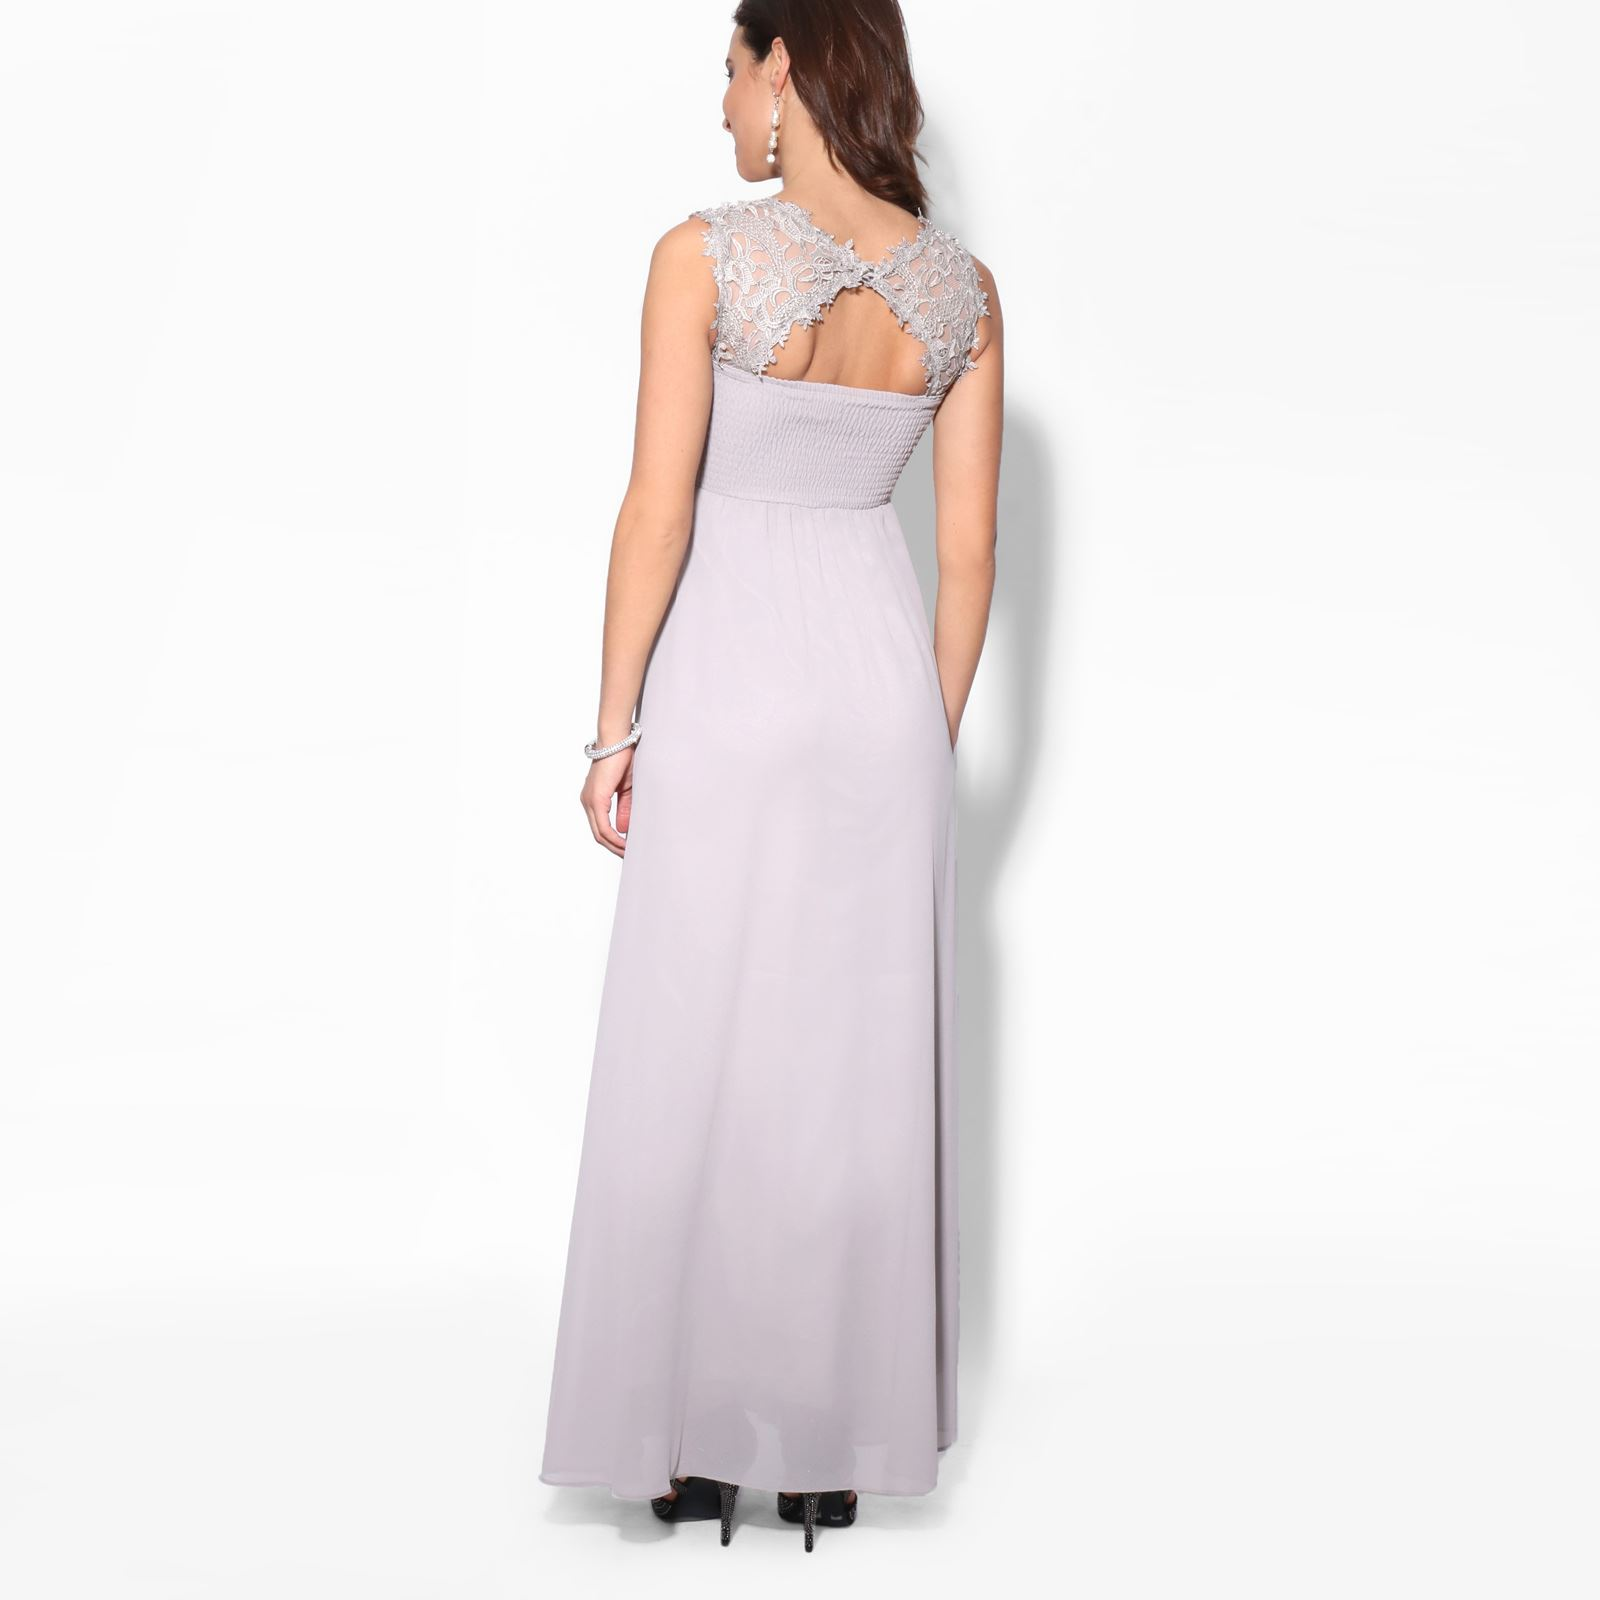 Women-Maxi-Dress-Ladies-Formal-Evening-Party-Cocktail-Lace-Chiffon-Gown-Party thumbnail 13